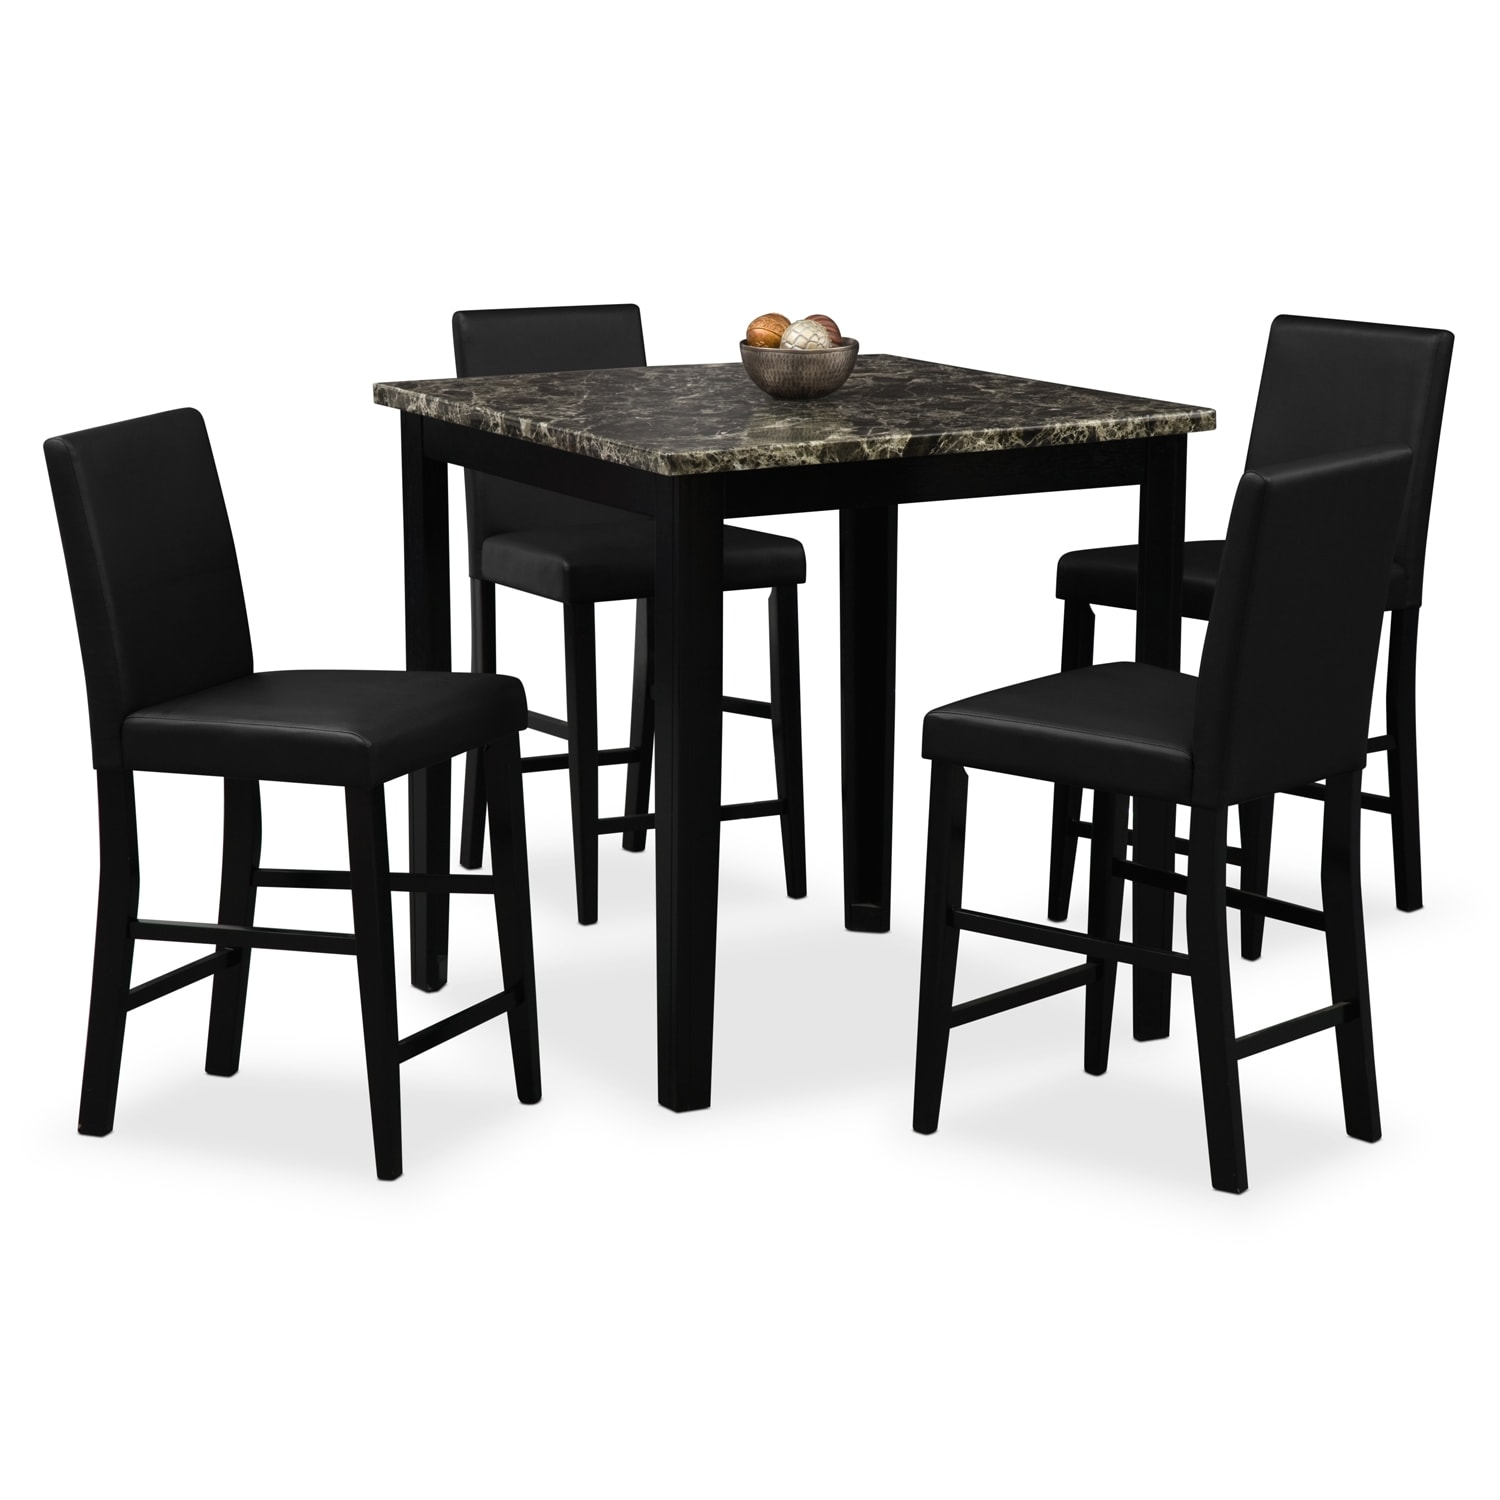 dining room counter height tables | Shadow Counter-Height Table and 4 Chairs - Black | Value ...